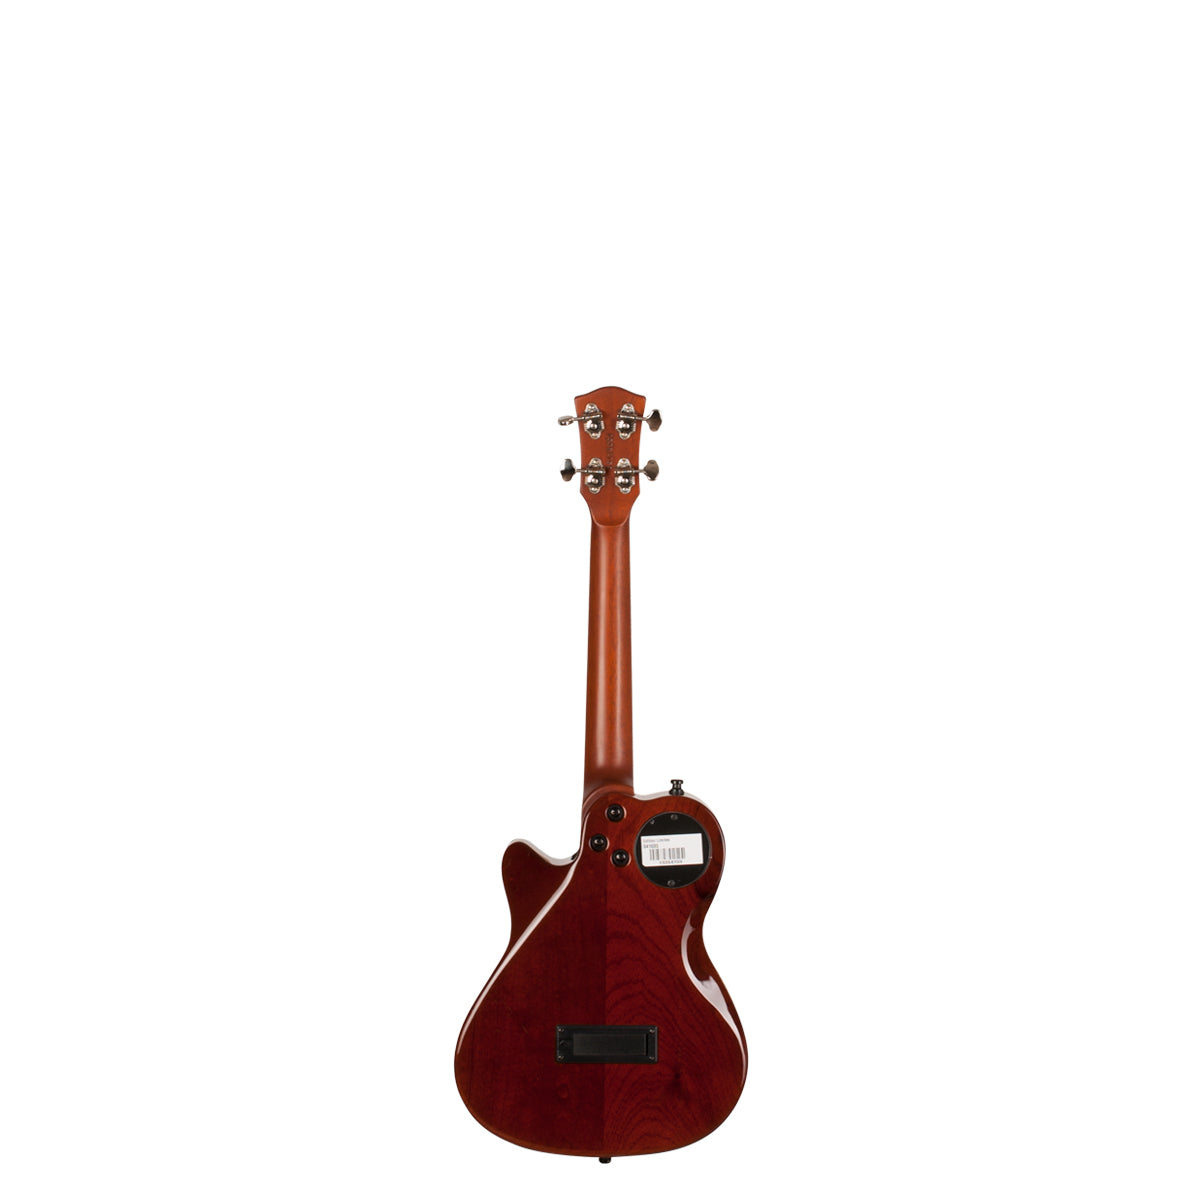 Godin Multi Uke Natural HG SF Electric Ukulele Tenor size